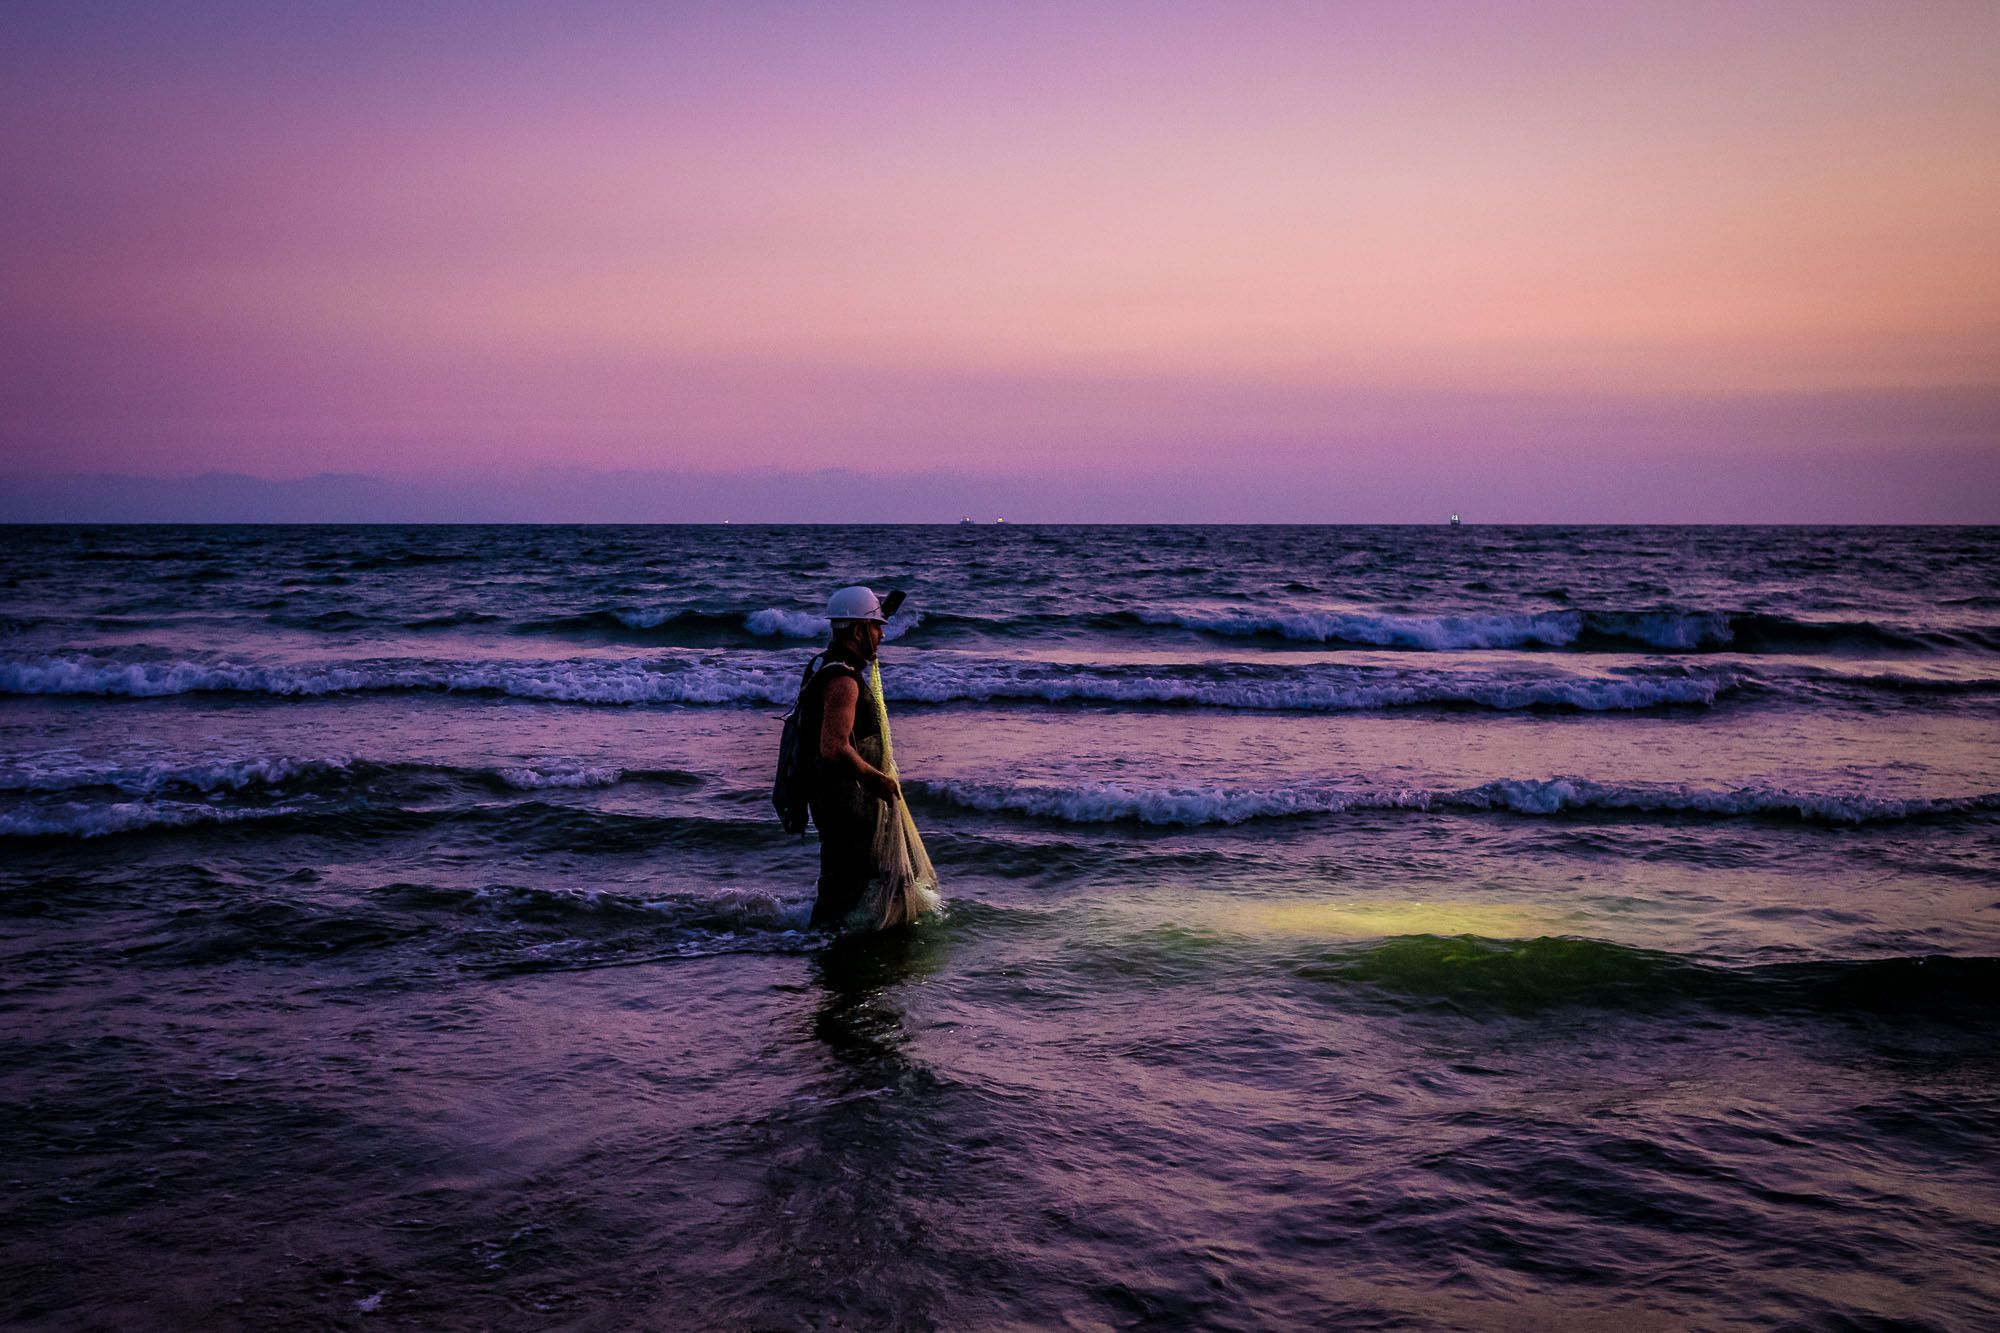 Fisherman walking in shallow water scanning for fish with his head lamp